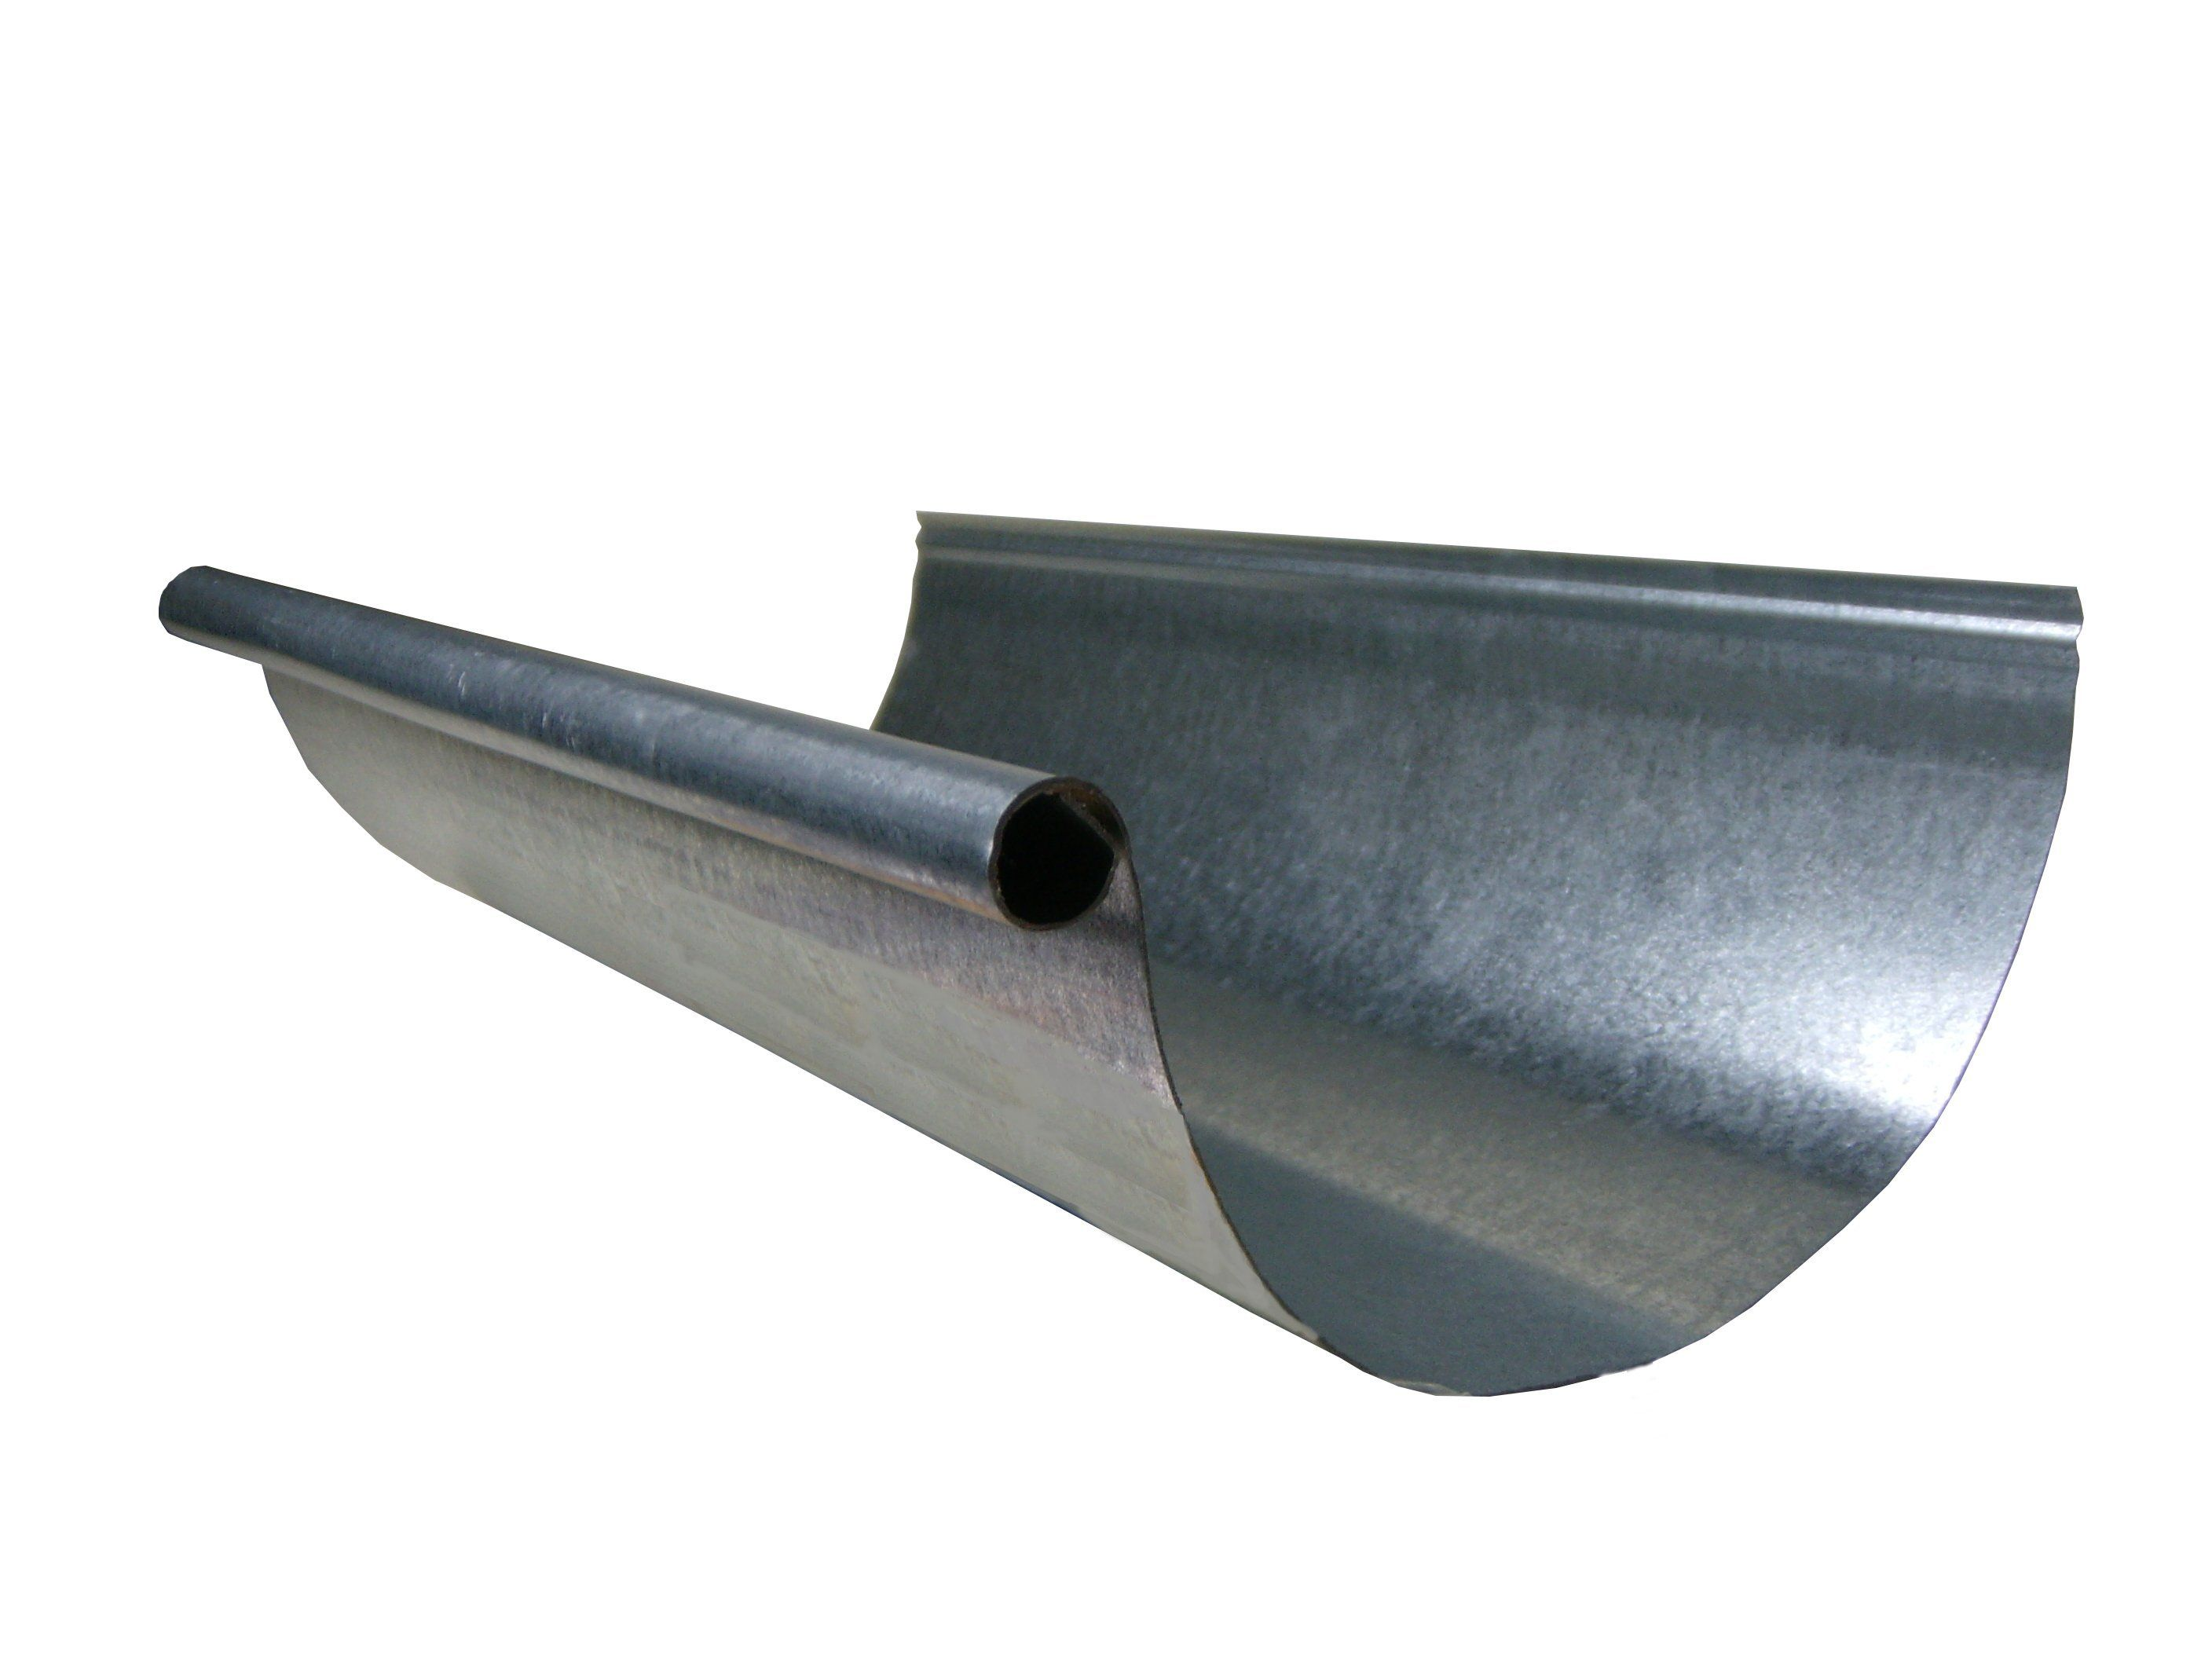 Of Hangers Or Spikes That Are Used For K Style Gutters Half Round Gutters Require Shanks Attached To The Eaves In Galvanized Gutters Gutters Rain Gutters